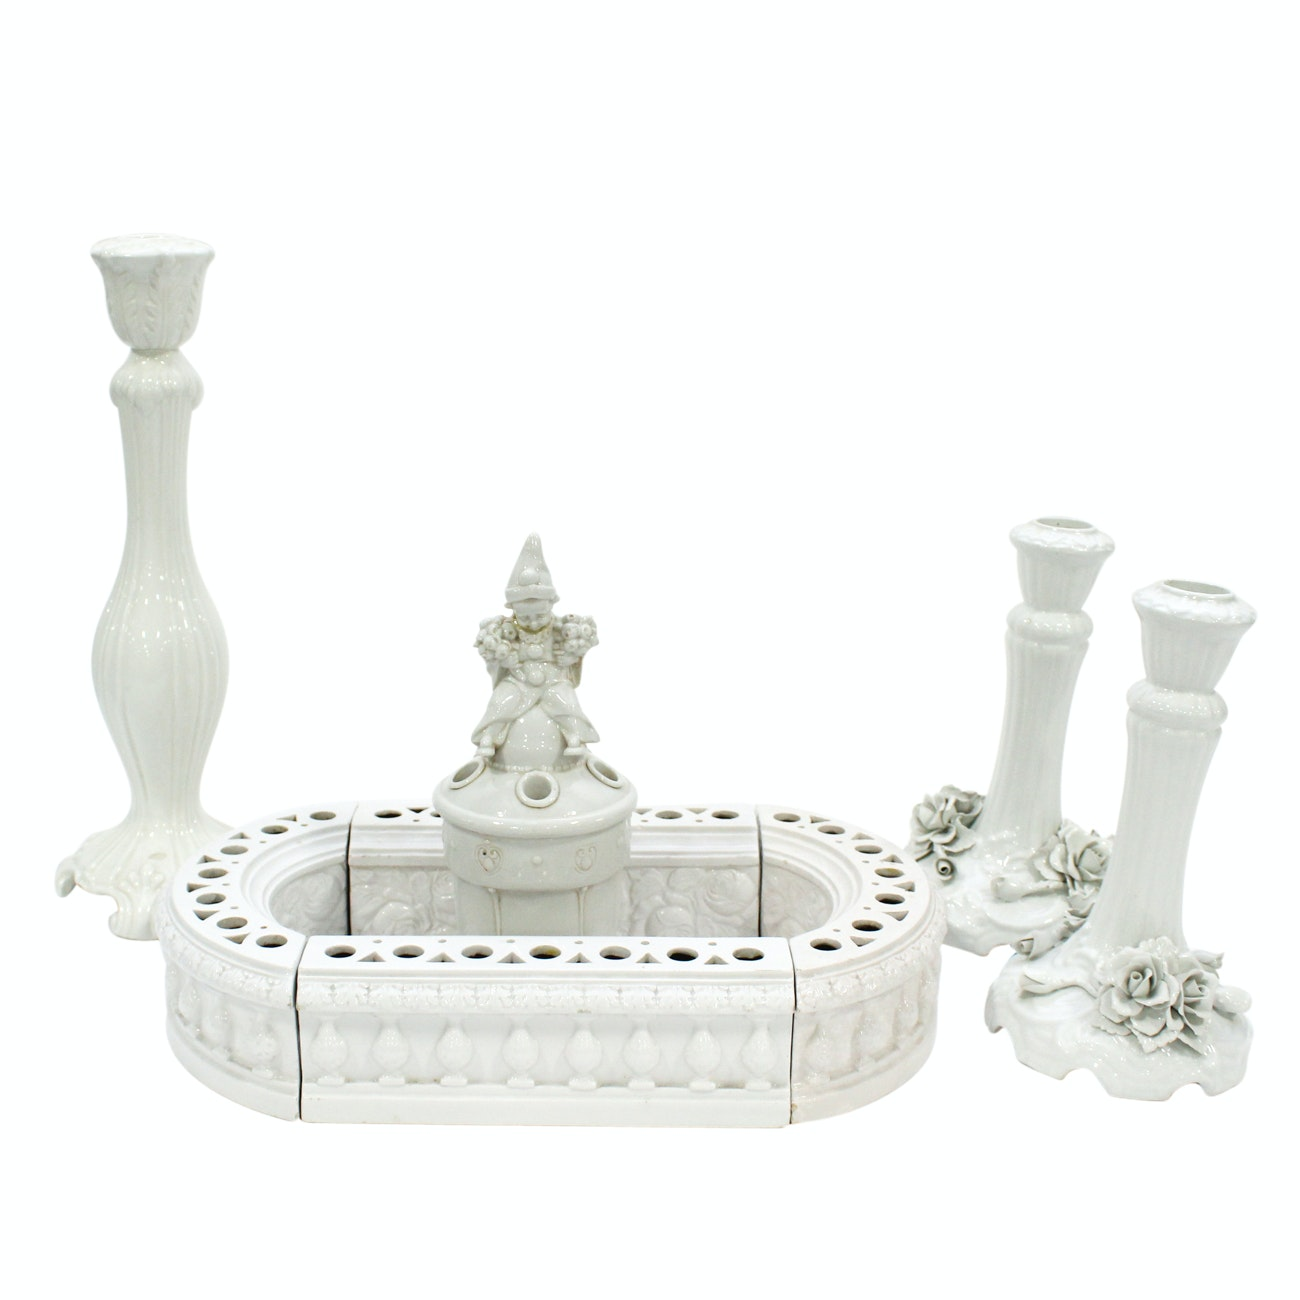 Collection of Italian White Porcelain, 20th Century